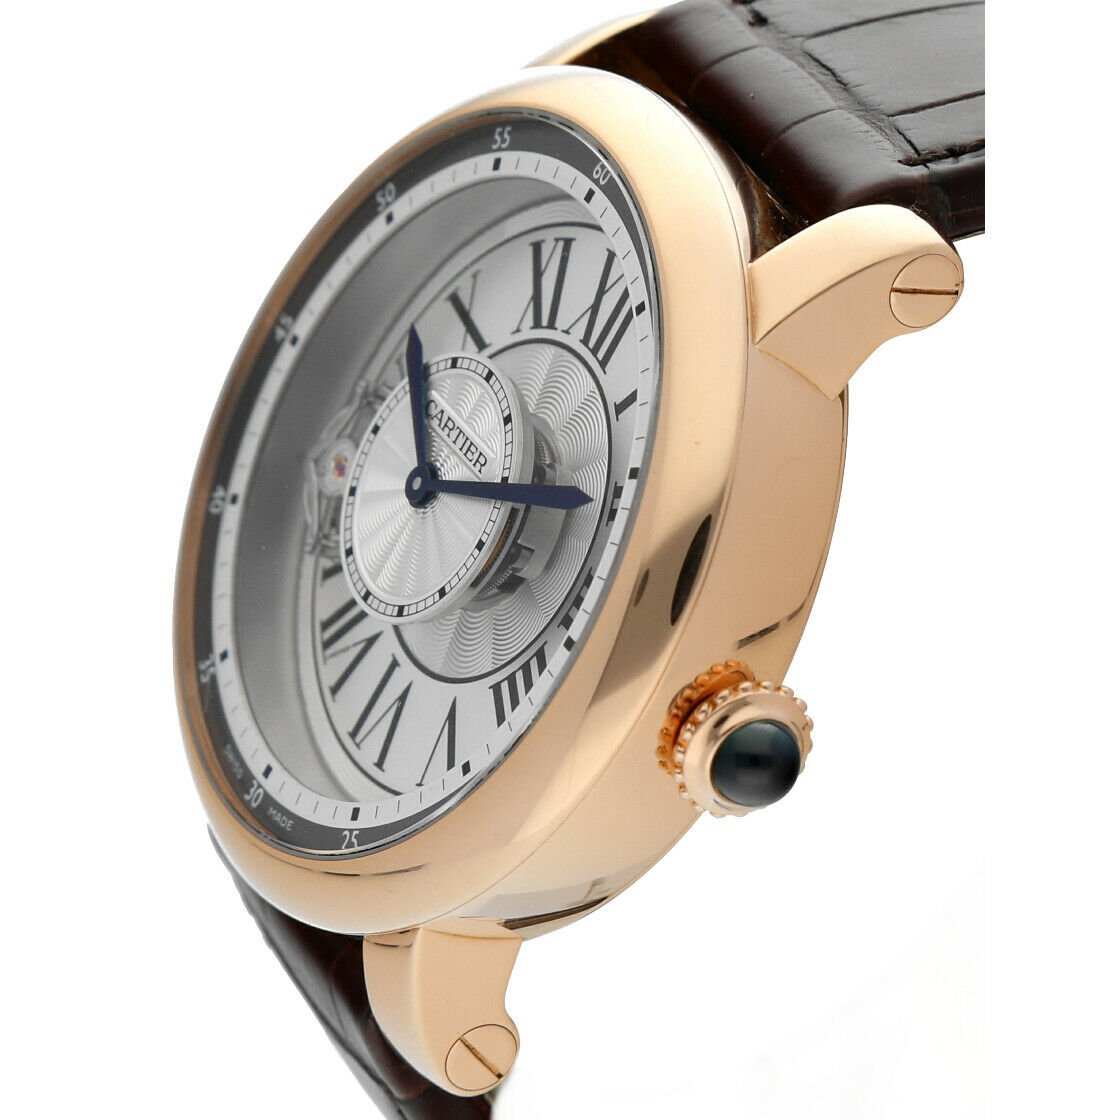 Cartier 3308 W1556205 Rotonde Astrotourbillon 18k Rose Gold Limited Mens Watch 124243384081 3